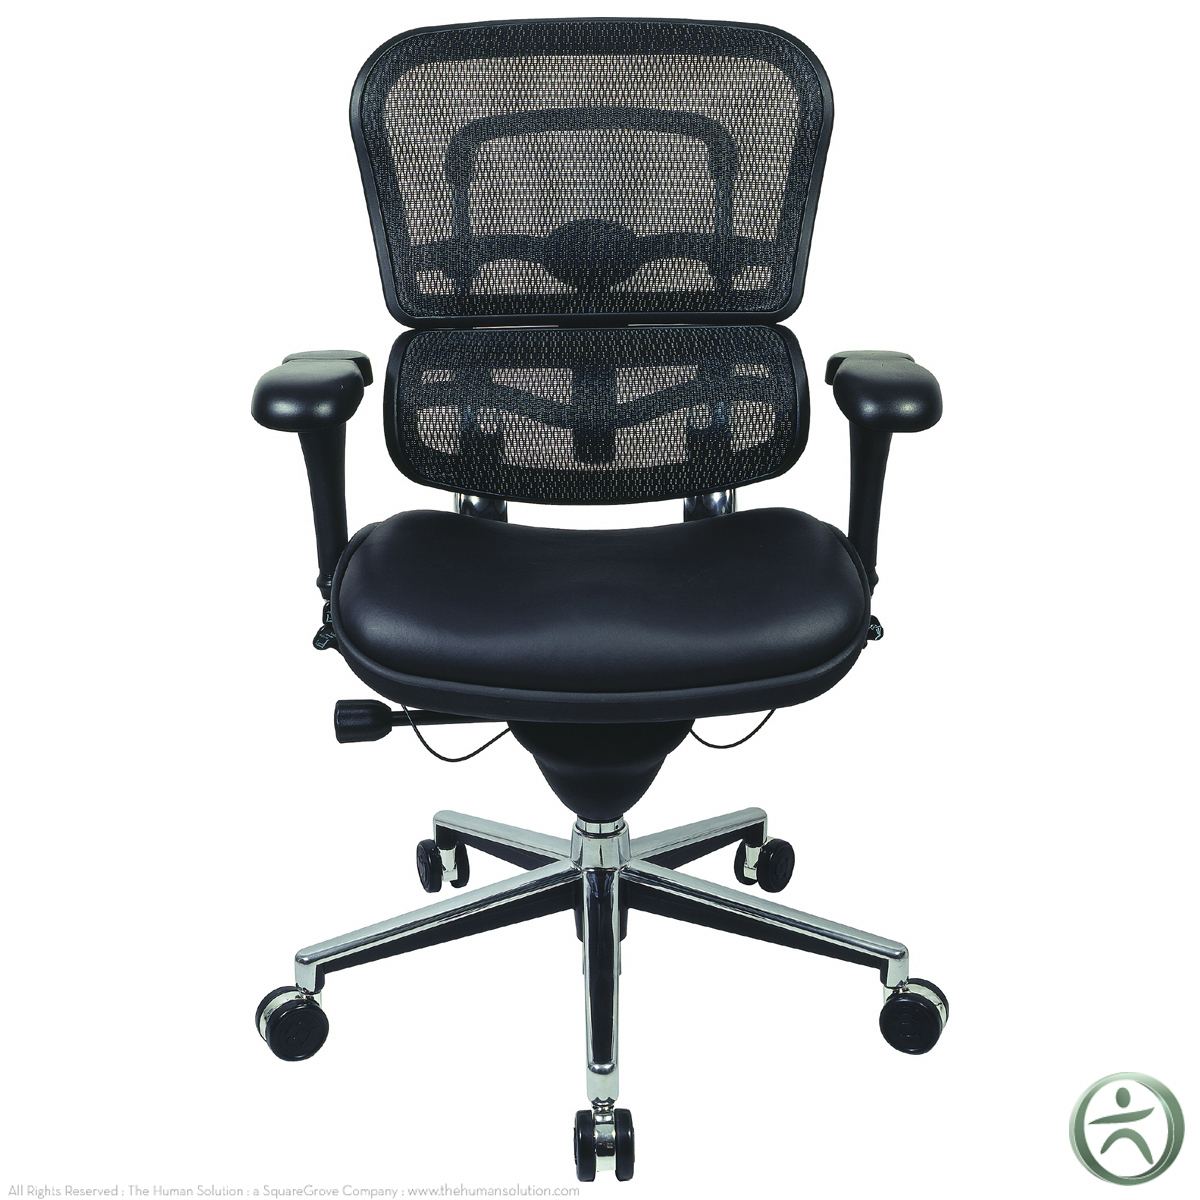 raynor ergohuman chair mesh chair with leather seat lem6erglo. Black Bedroom Furniture Sets. Home Design Ideas